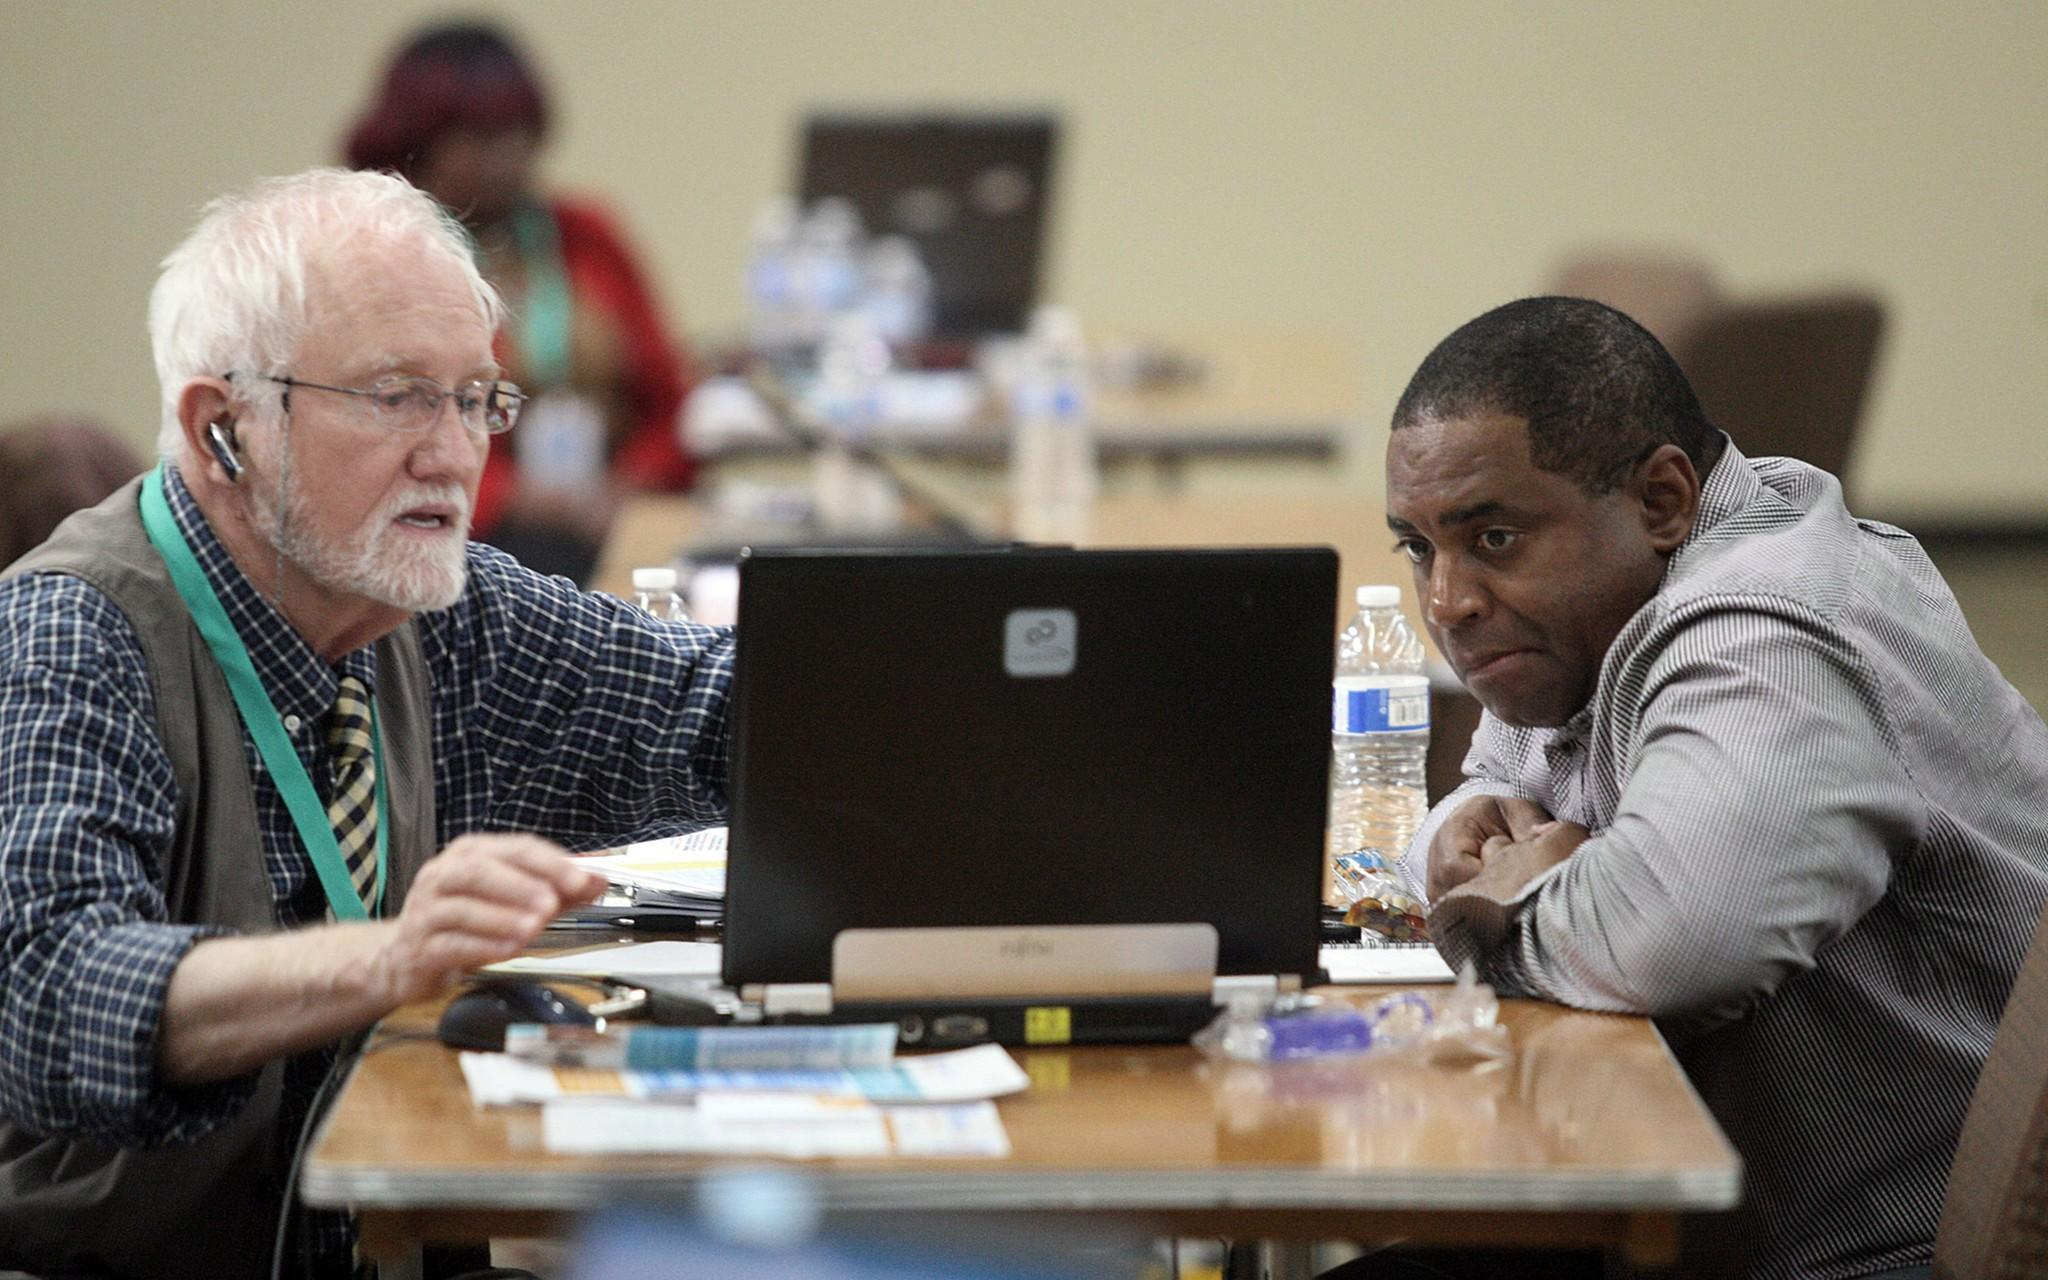 Mike Everding, left, a certified health insurance agent for Covered California, helps James Randle get a better health insurance rate at an Obamacare enrollment event at Faithful Central Bible Church in Inglewood.